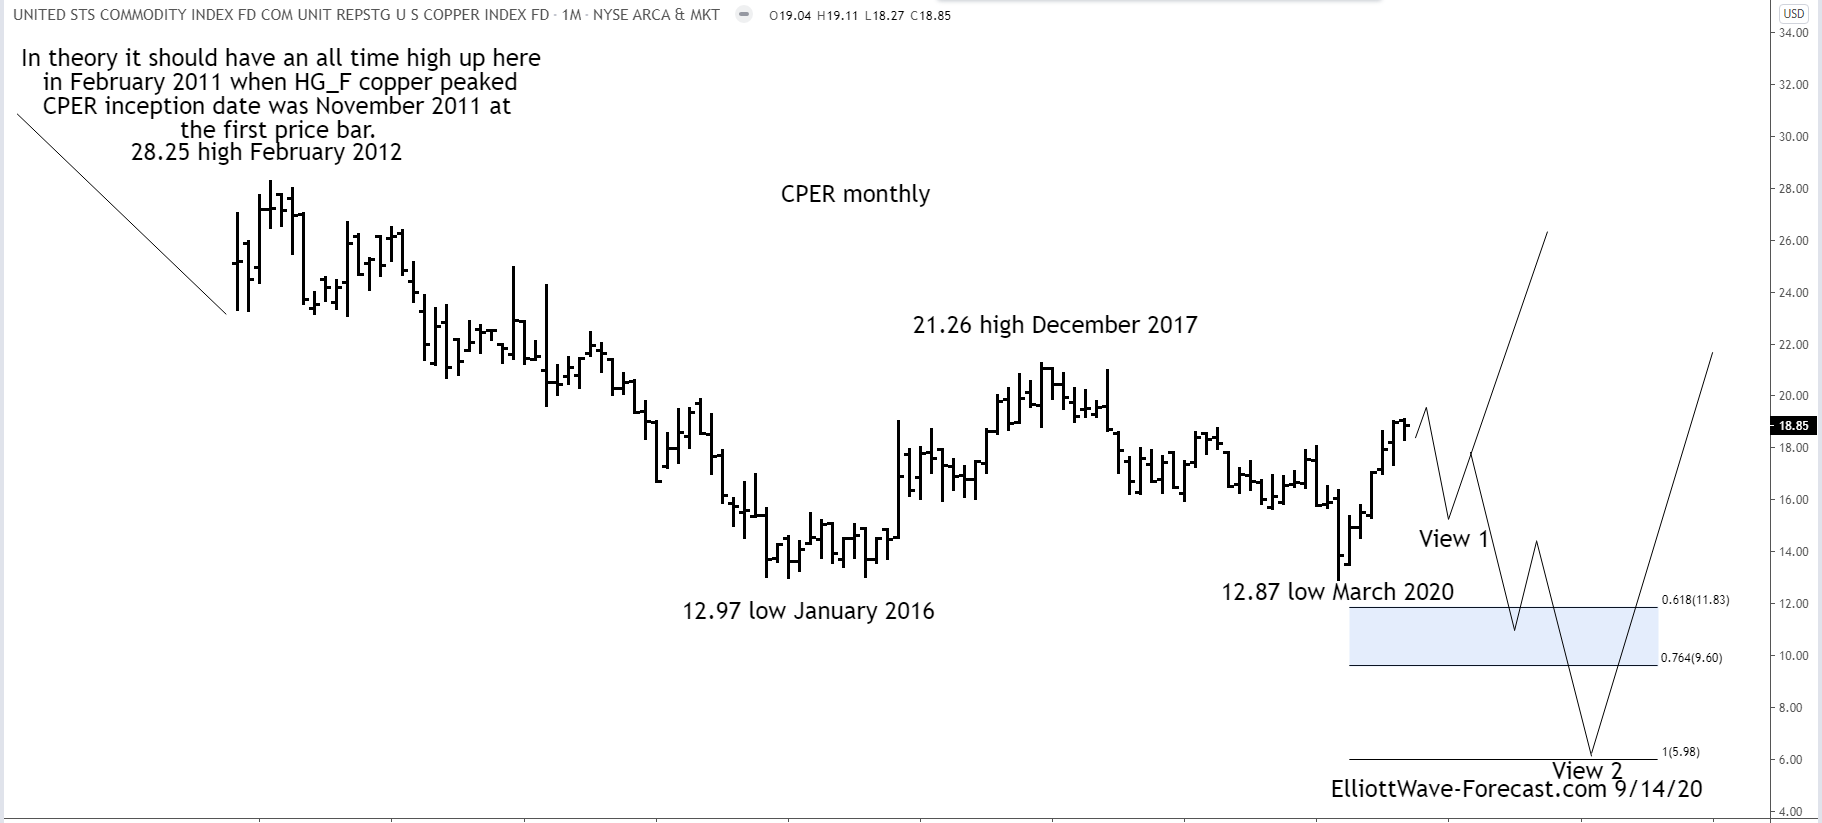 $CPER Copper Index Tracker Long Term Corrective Cycles